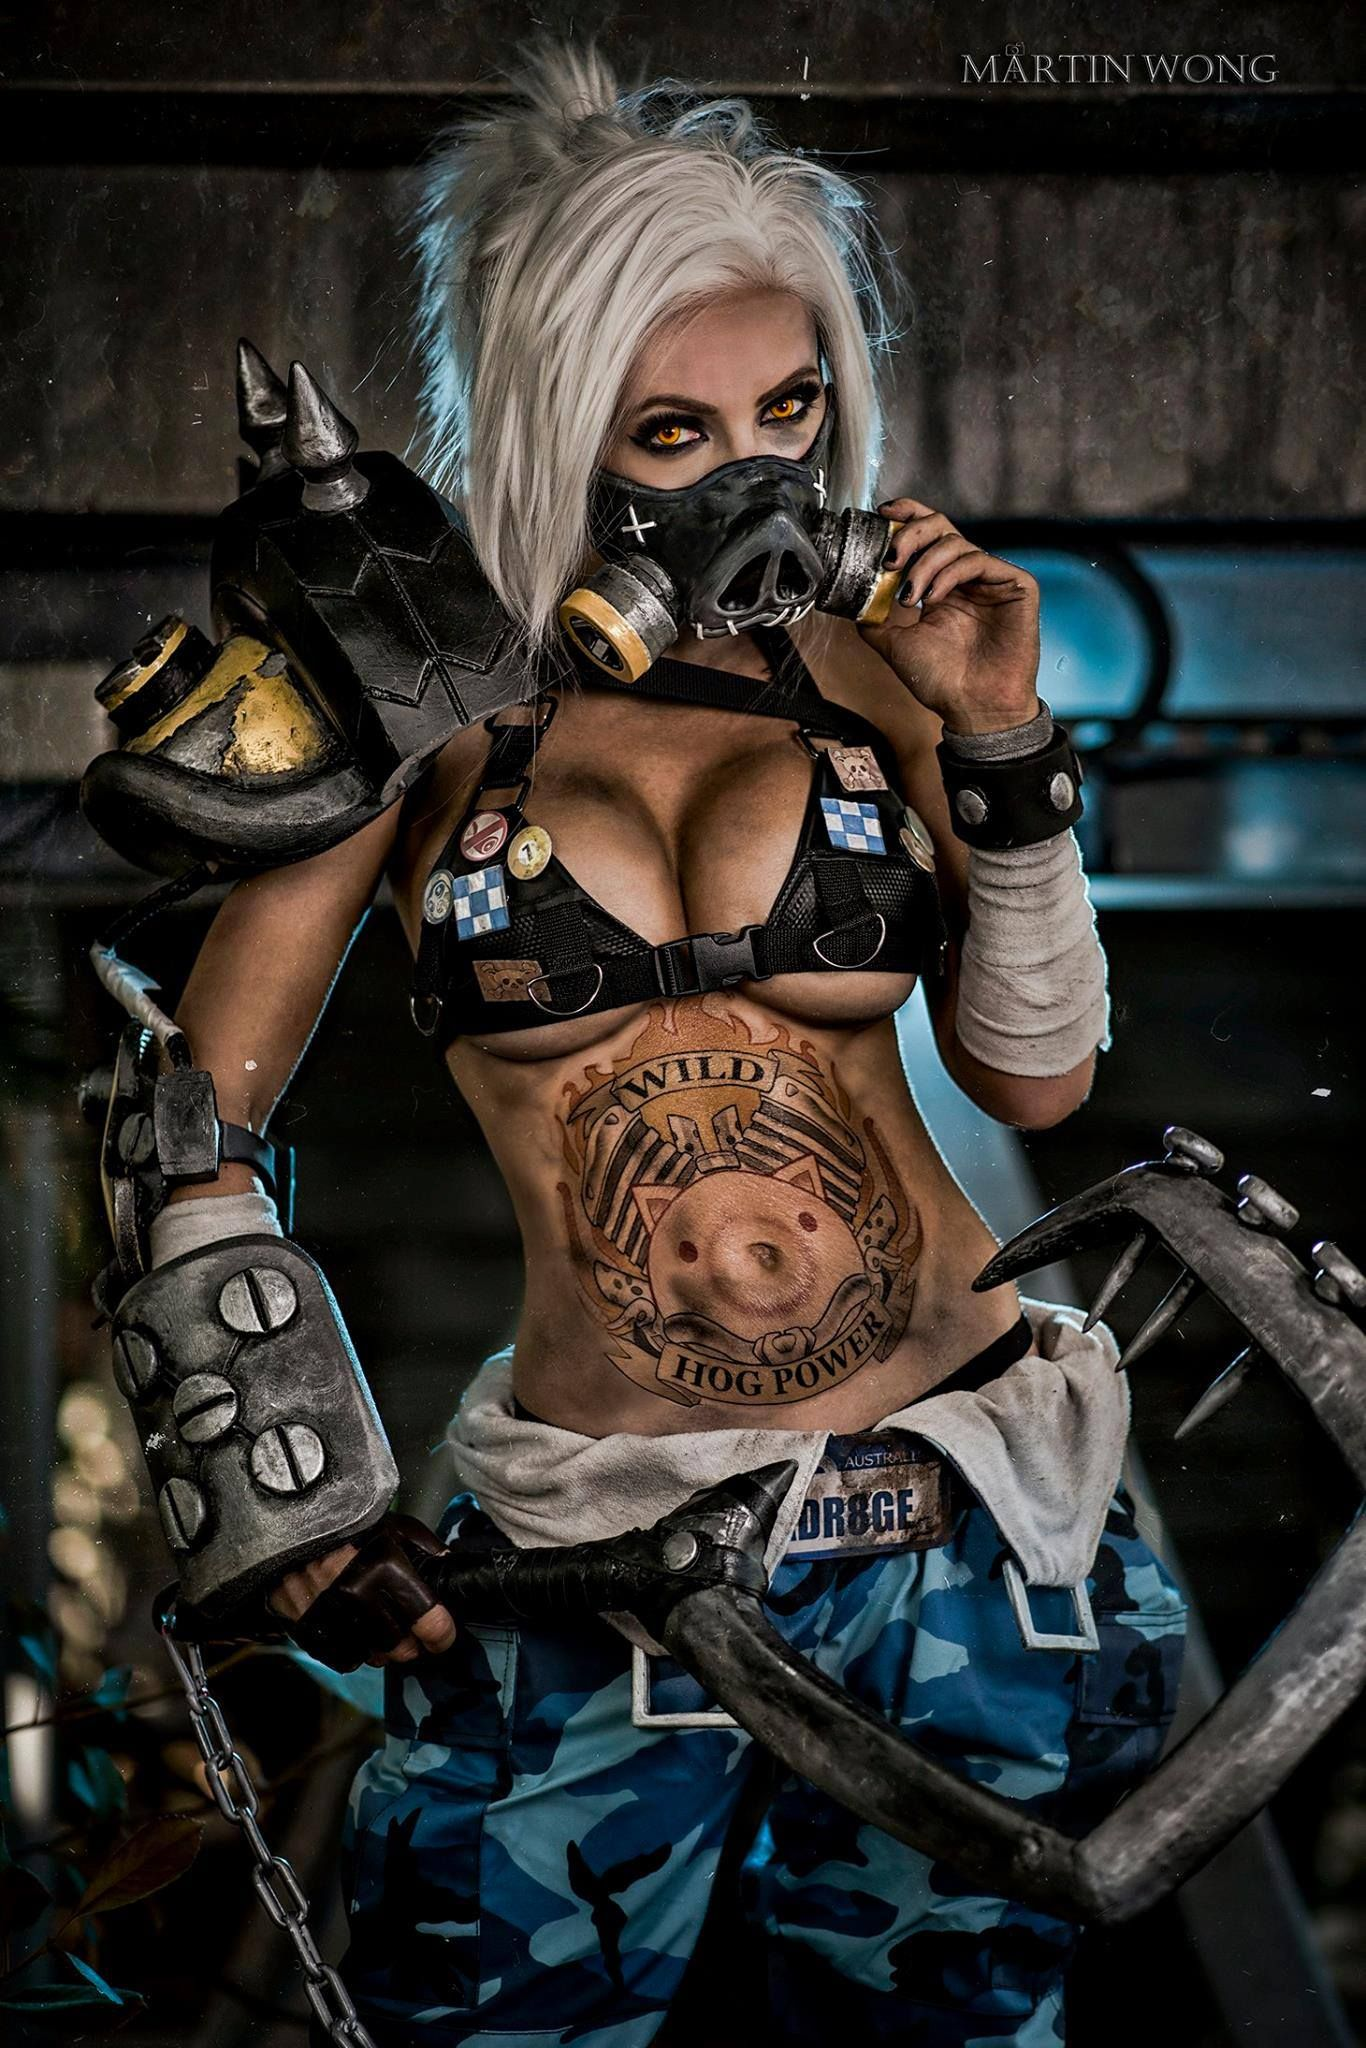 Videogame Overwatch Character RoadHog Cosplayer